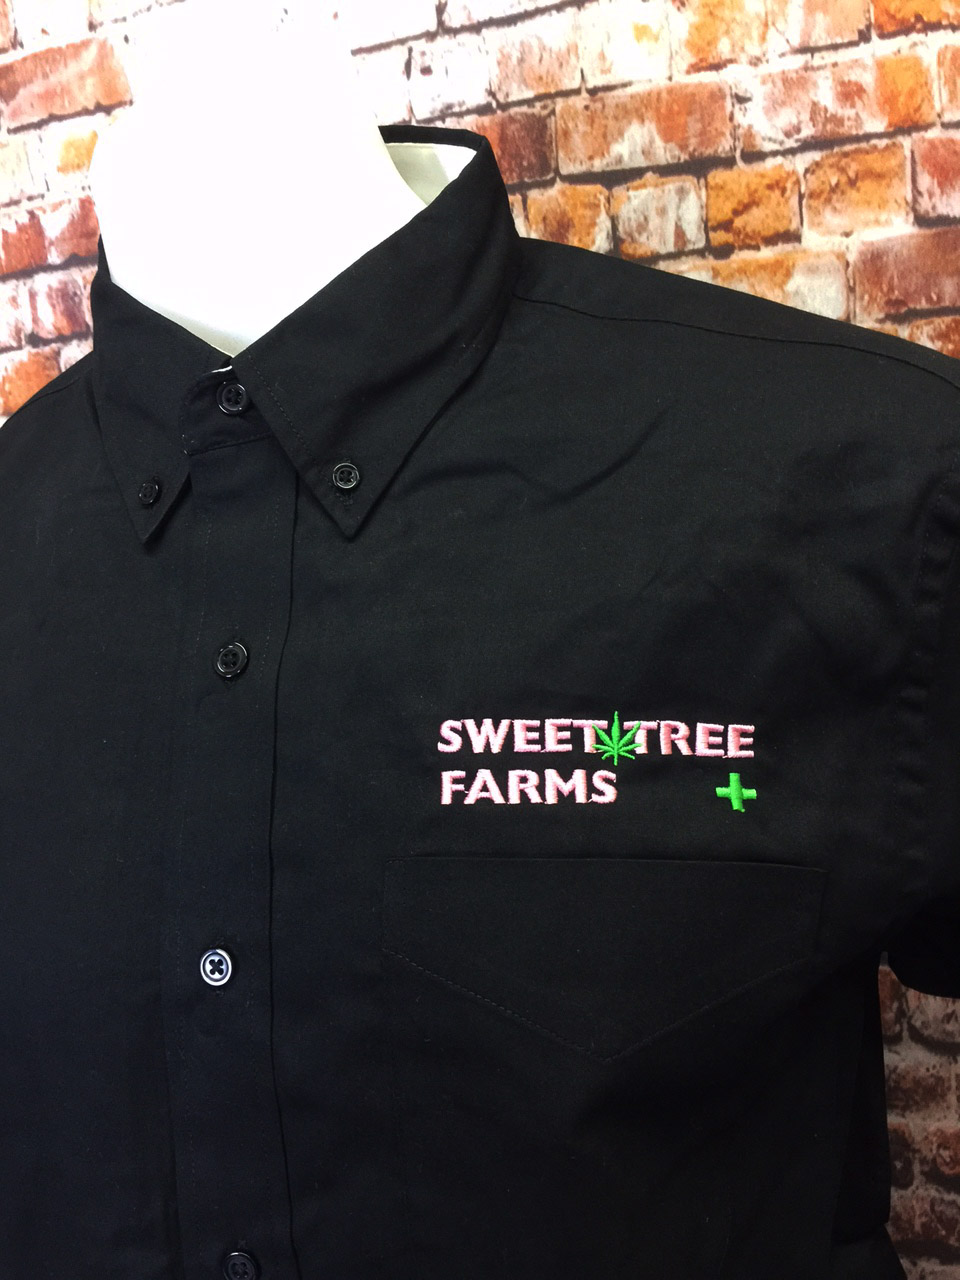 Sweet Tree Farms Embroidery.jpg